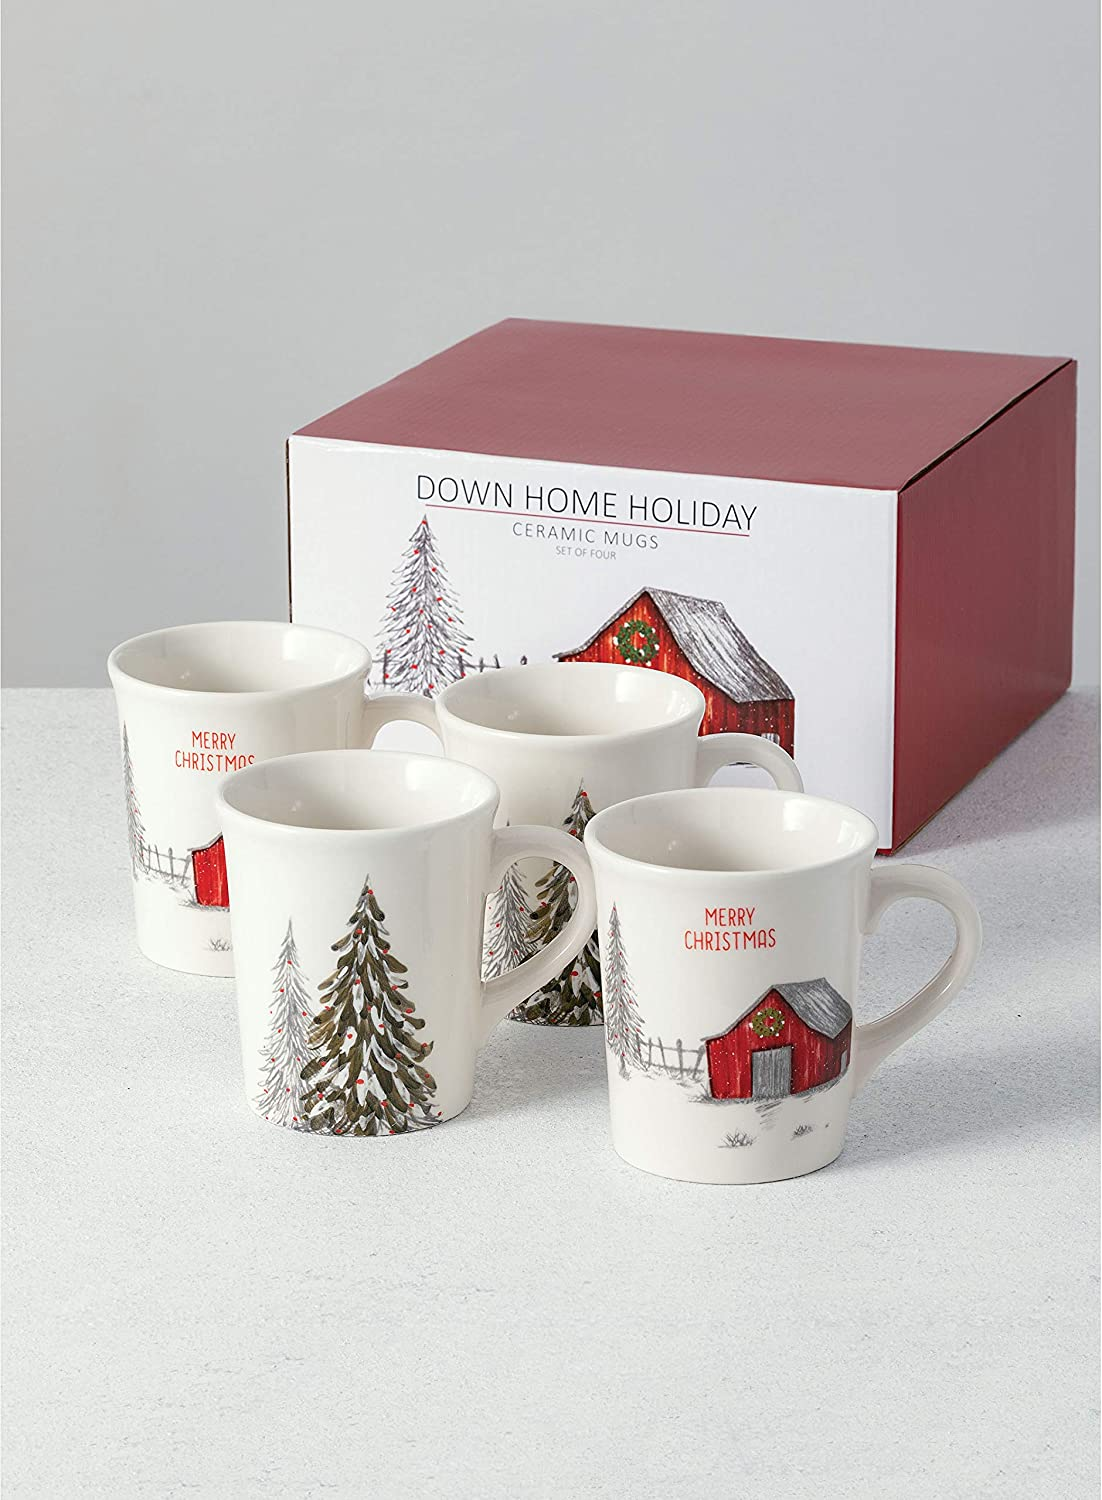 Sullivans Down Home Holiday Mug Set of 4, Holiday Barn and Christmas Tree Print on Four Mugs (PN3162)